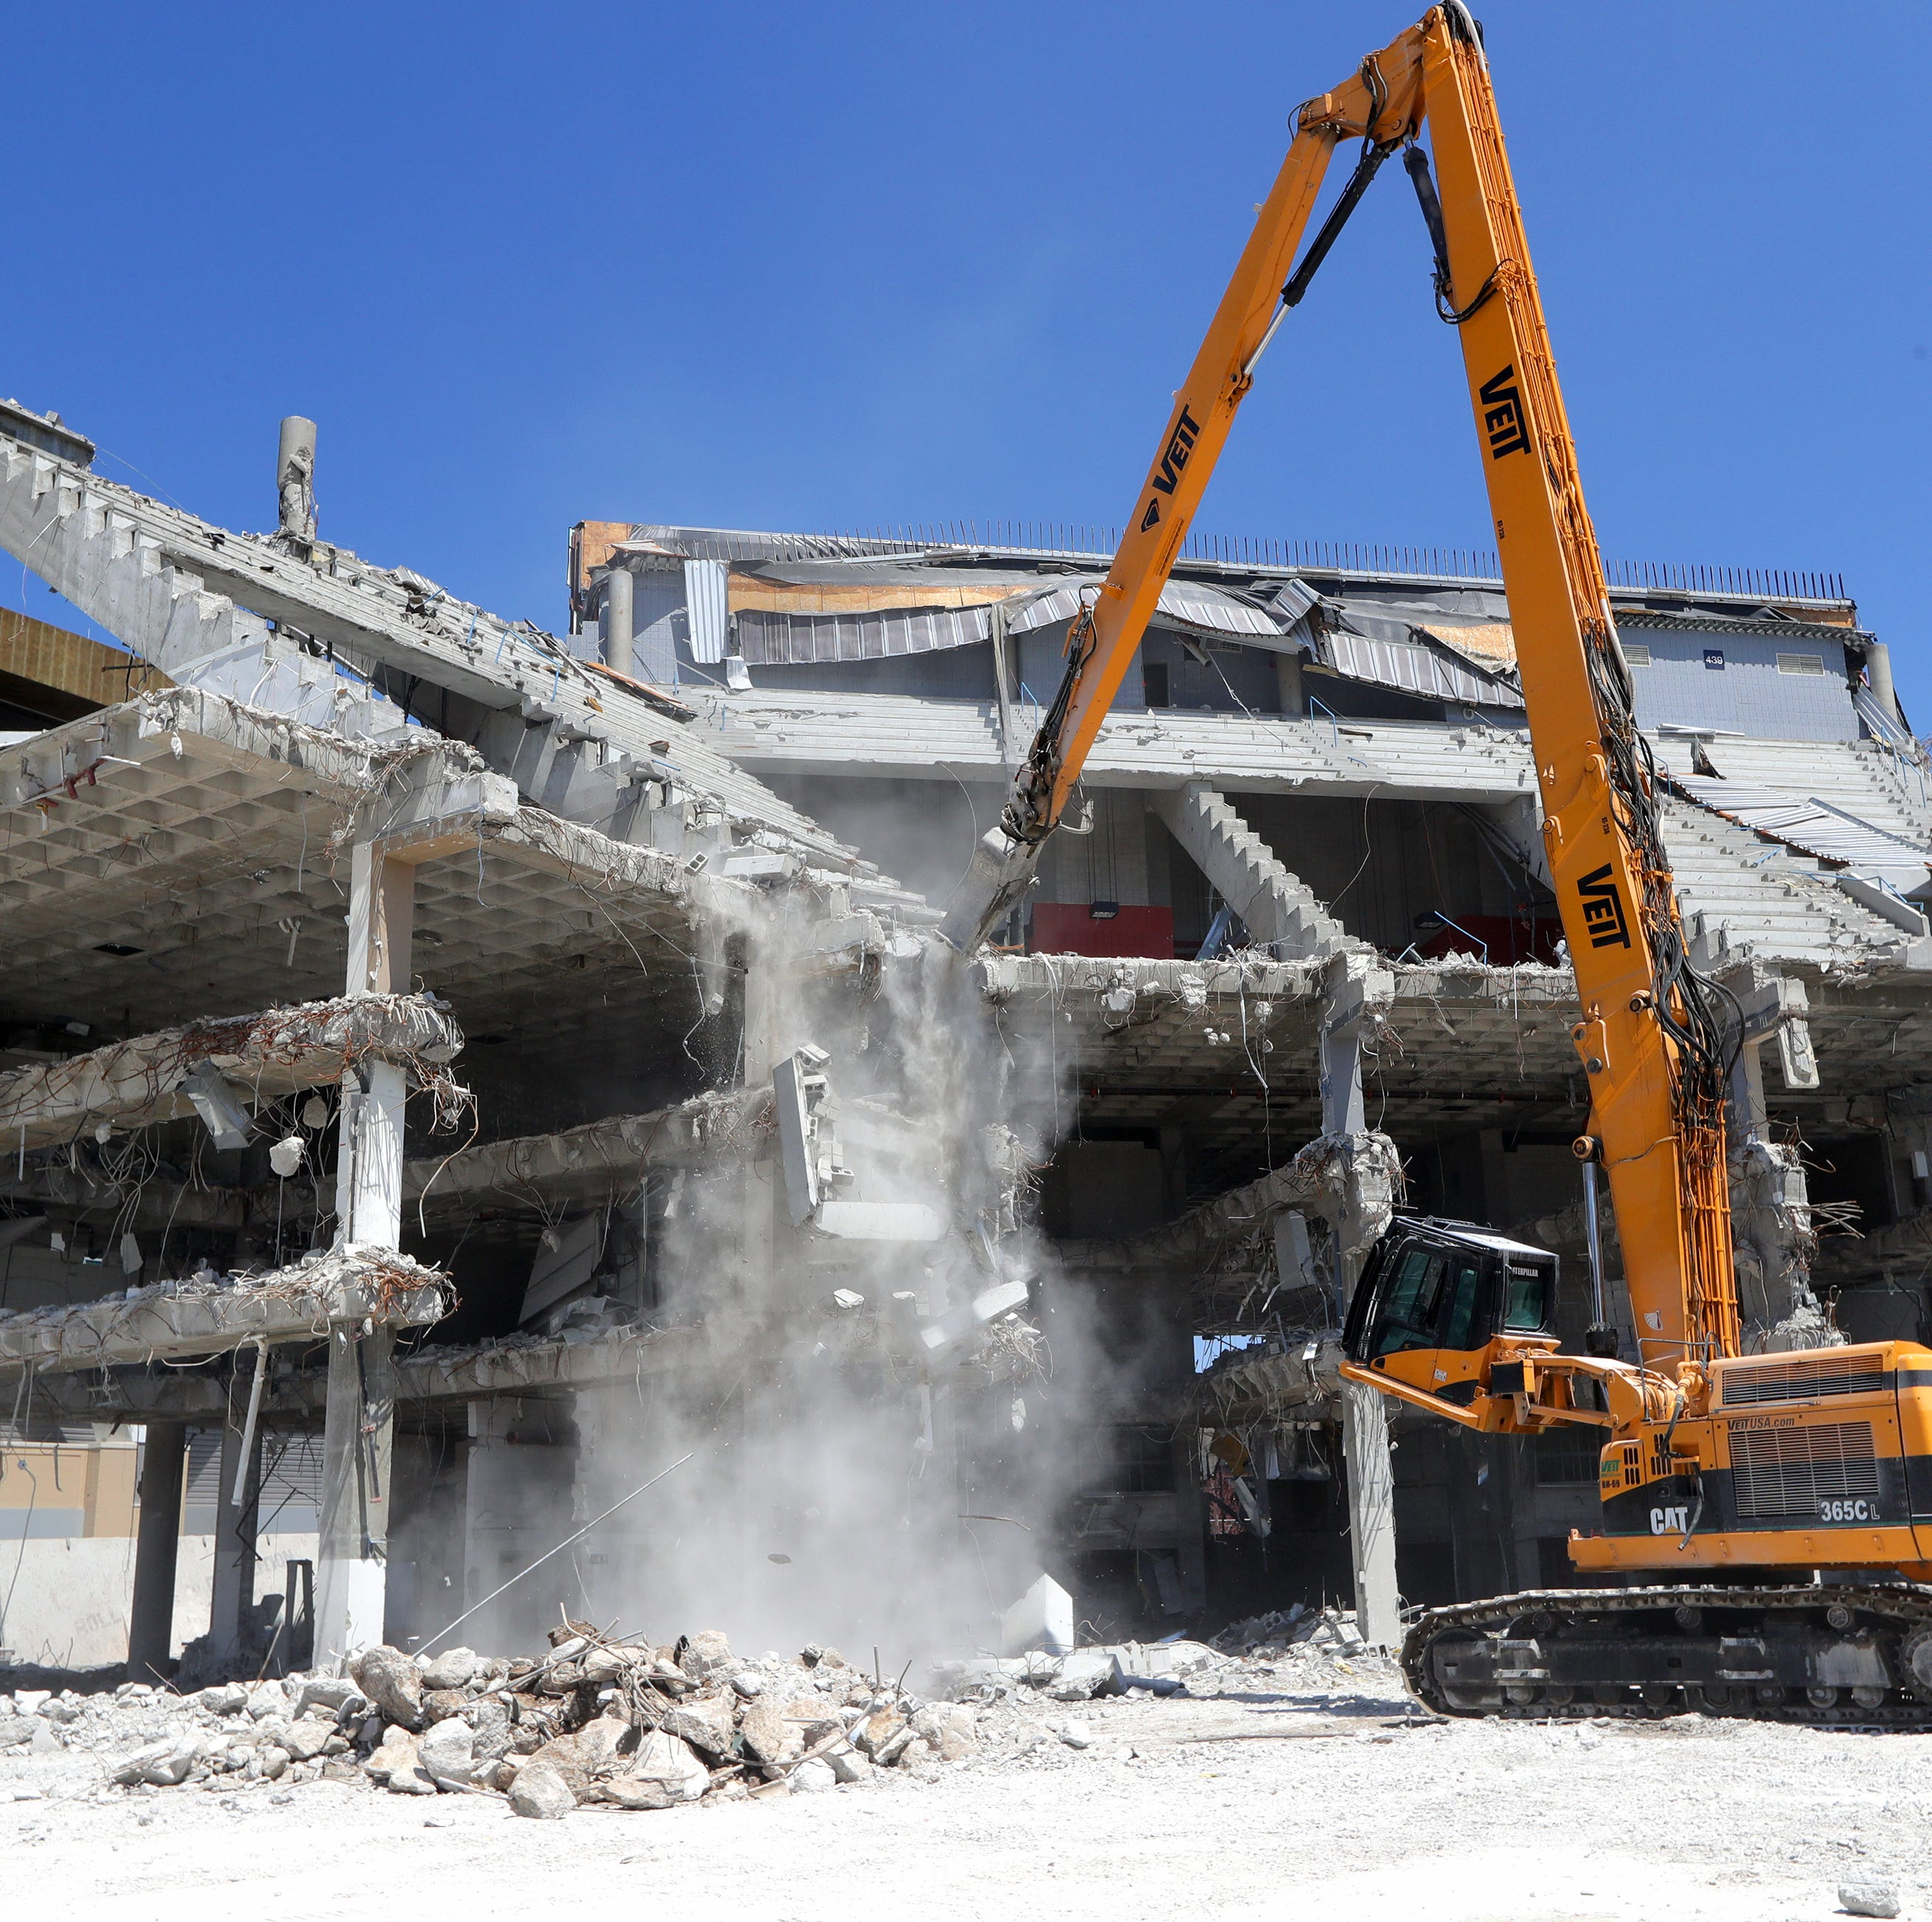 Stingl: For the Bradley Center demolition crew, the fun is in turning an arena into rubble